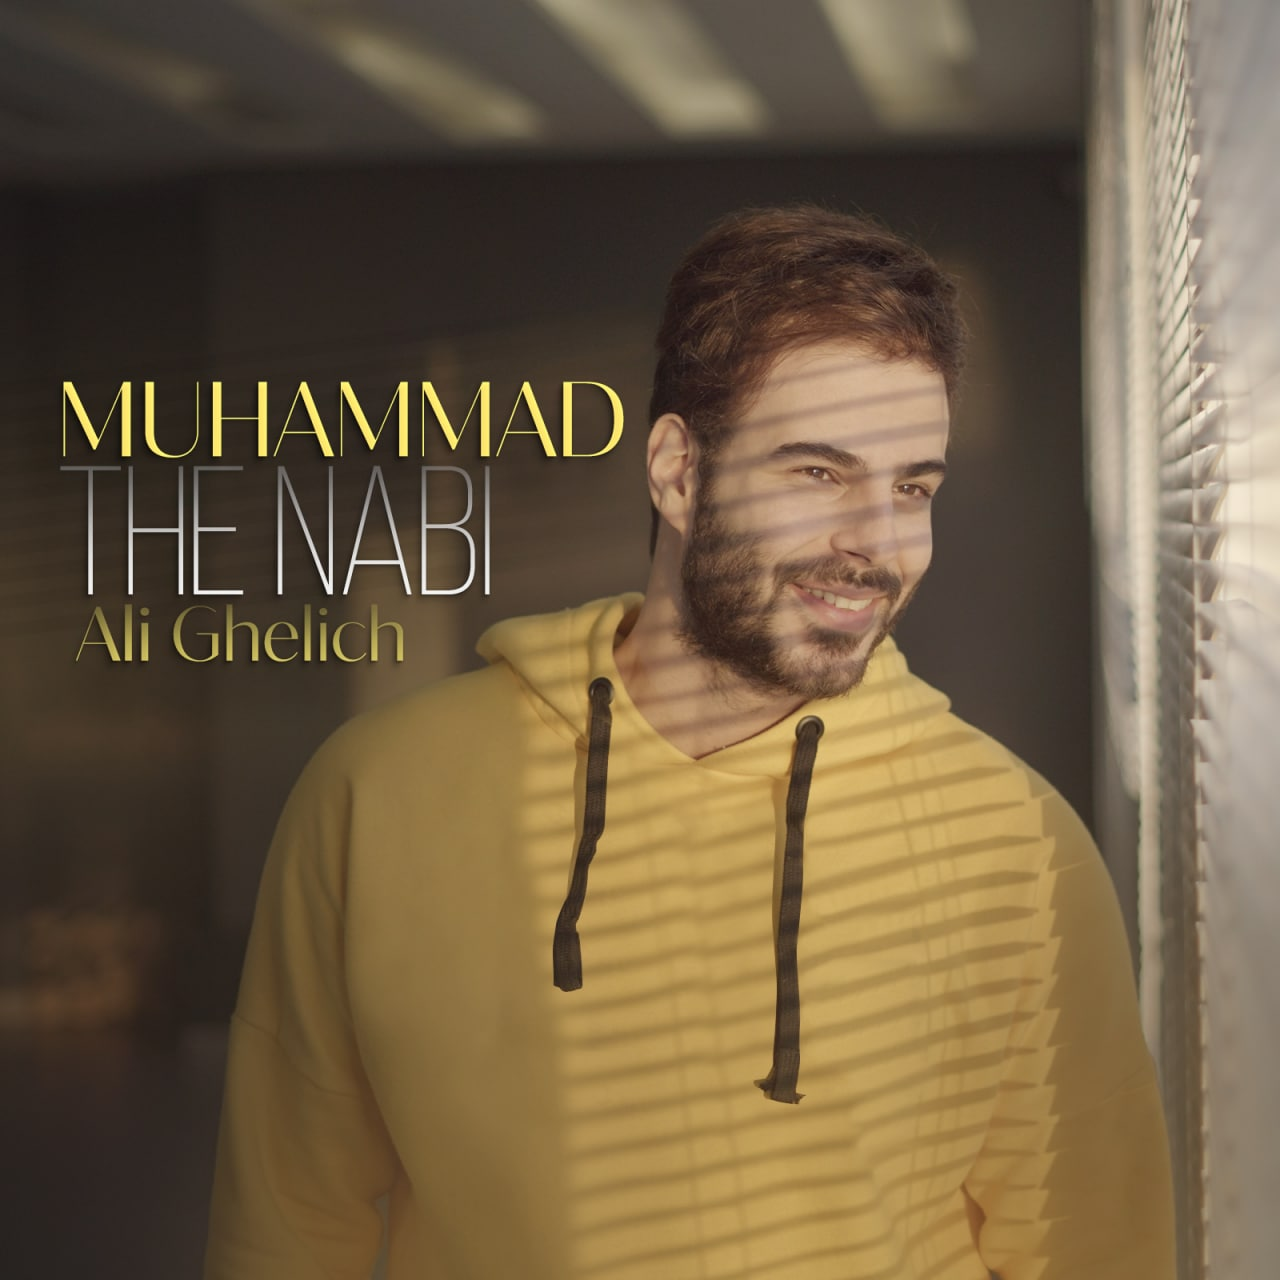 Muhammad The Nabi